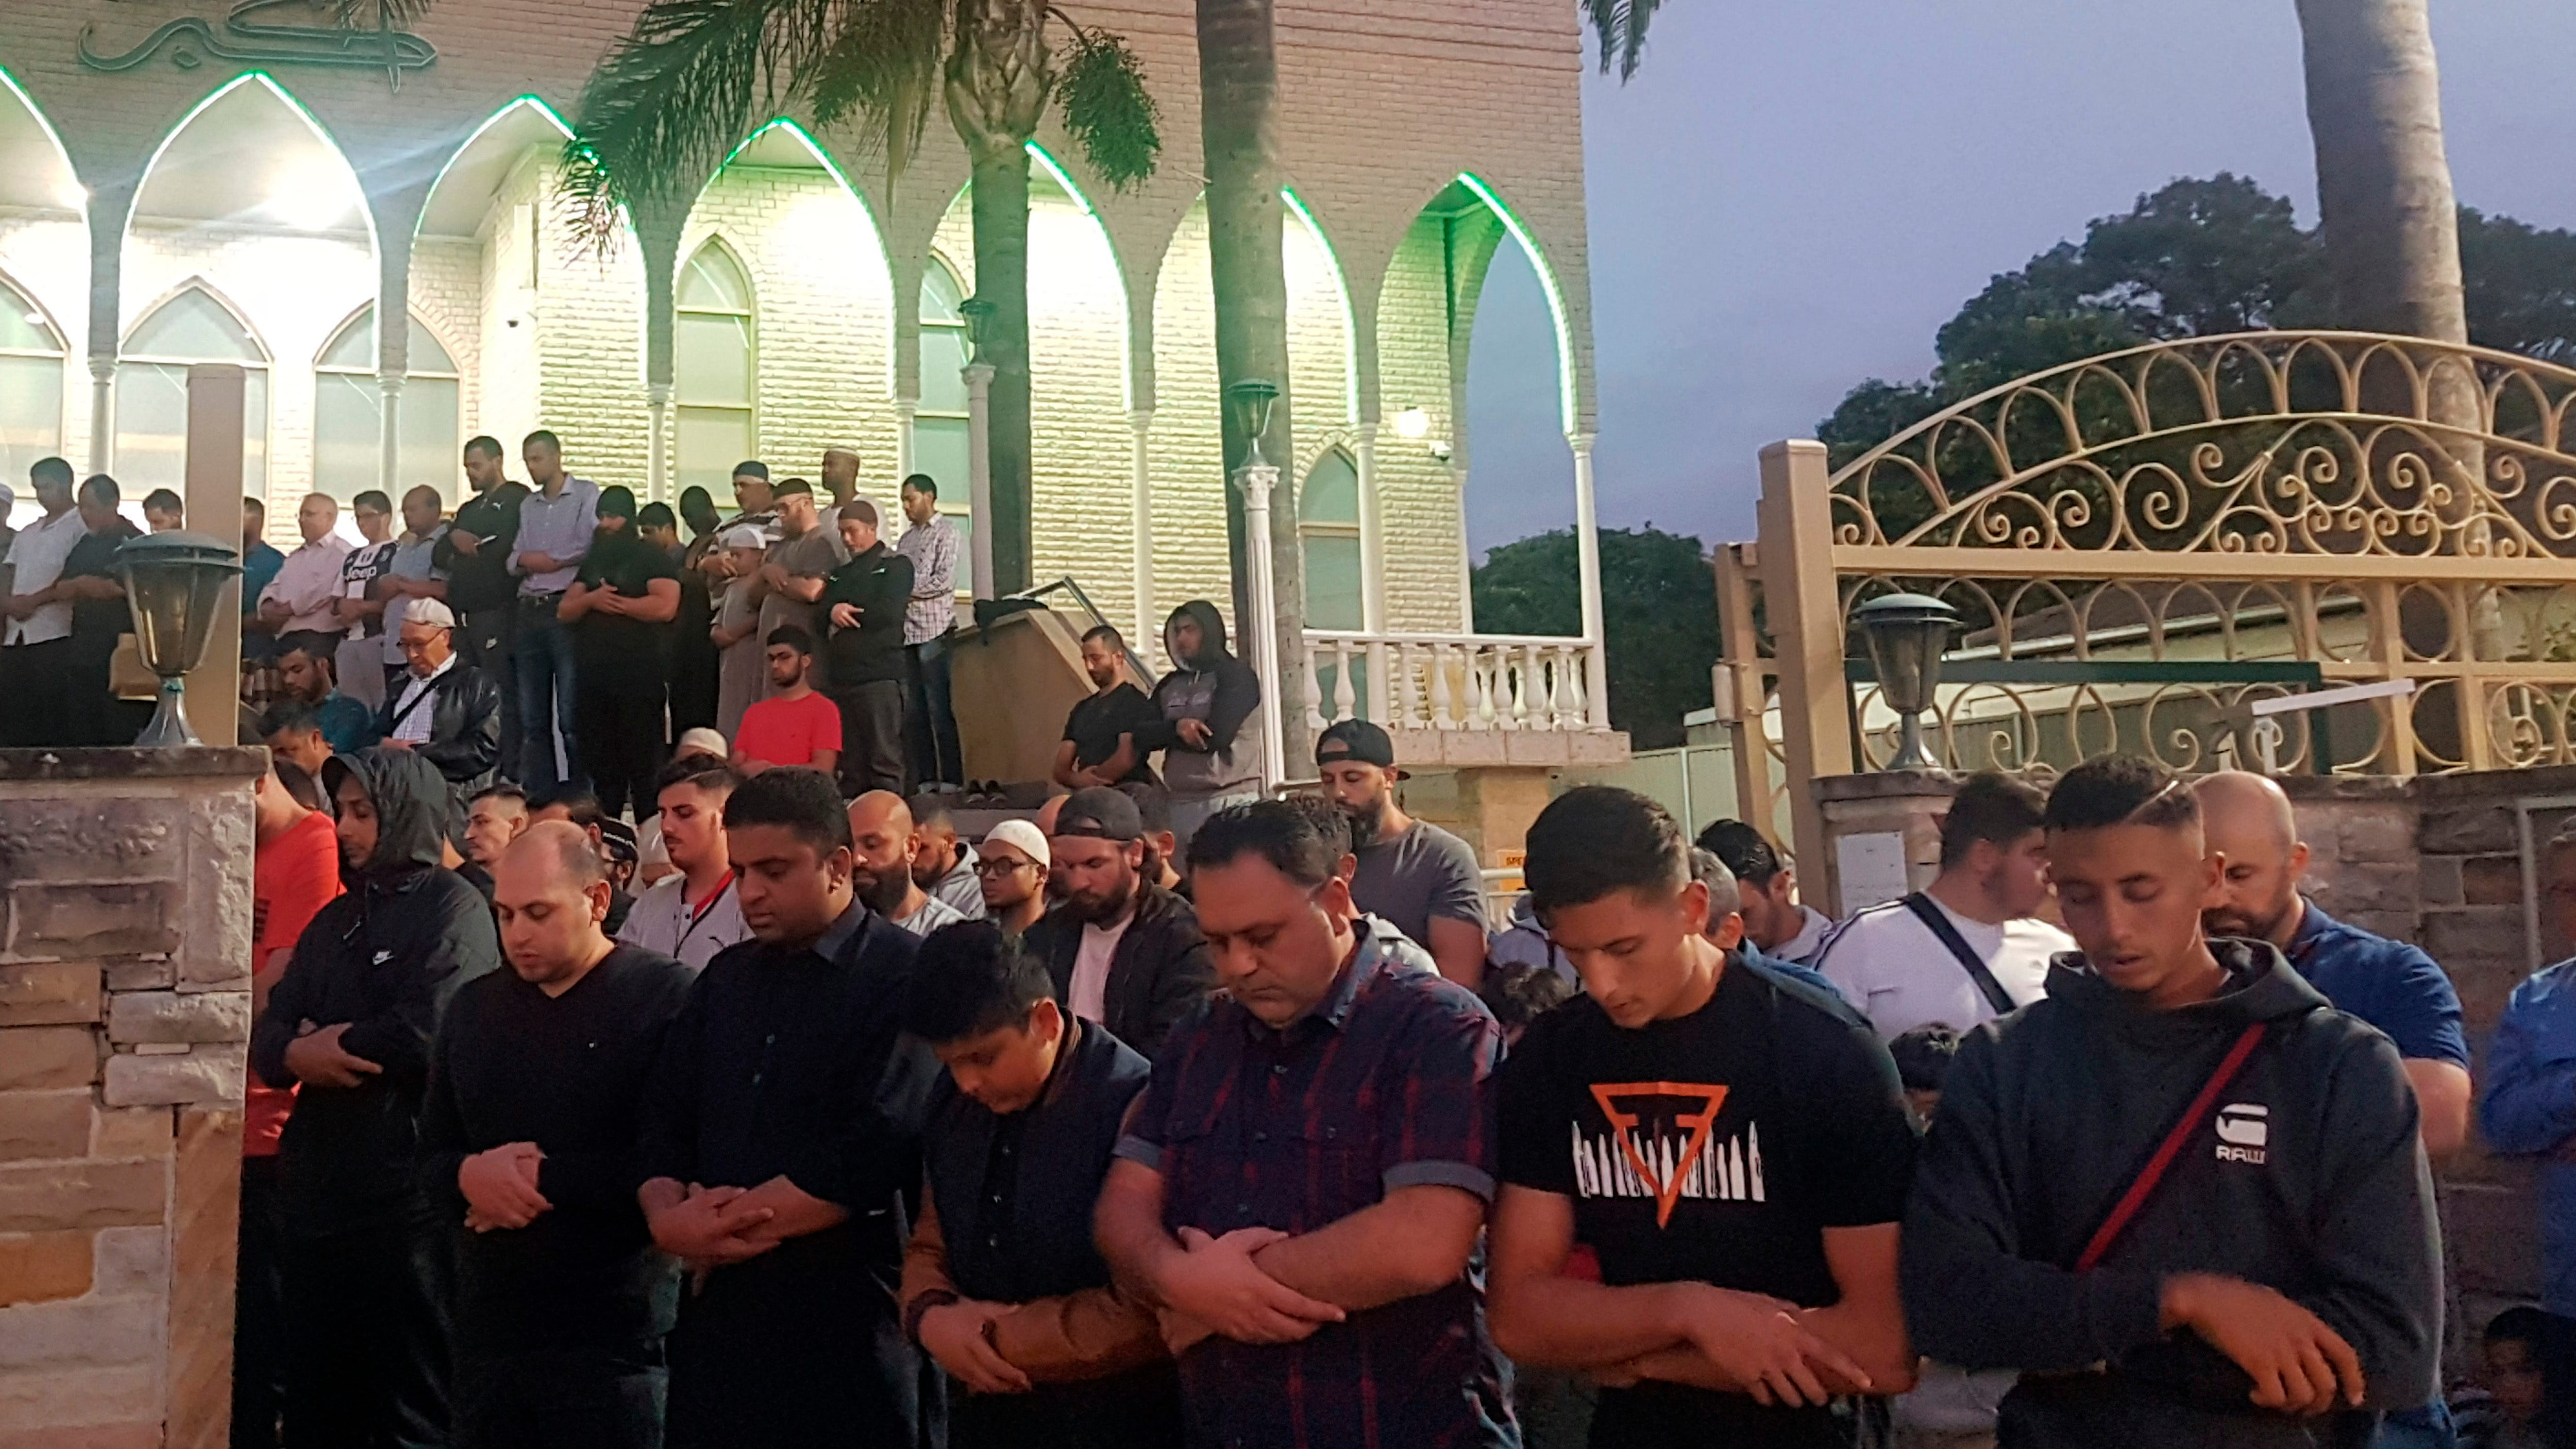 New Zealand Mosque Attack: Metro Area's Muslim Community Reels From New Zealand